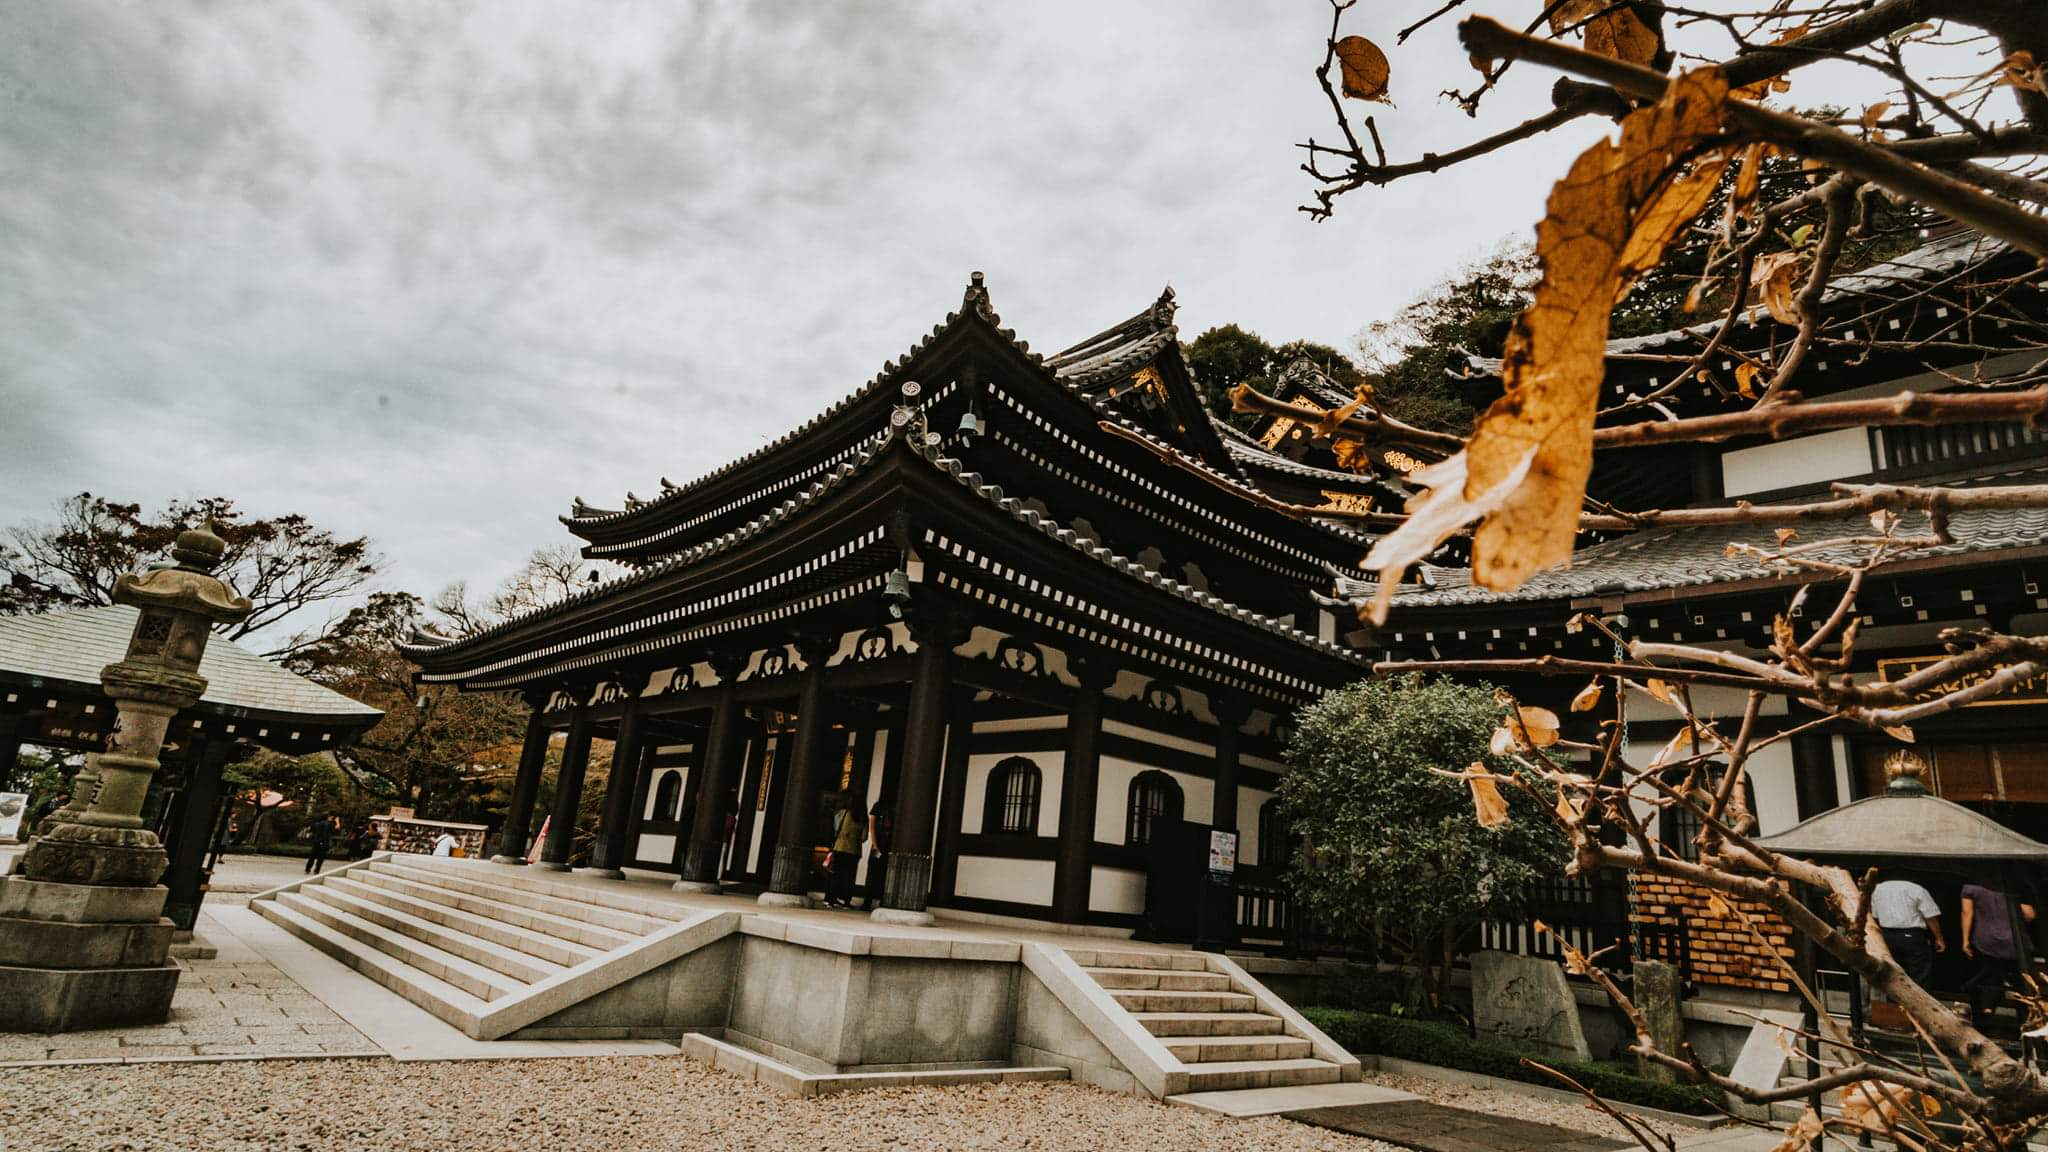 Best-places-to-go-in-kamakura-on-a-budget-polywander-hasedara